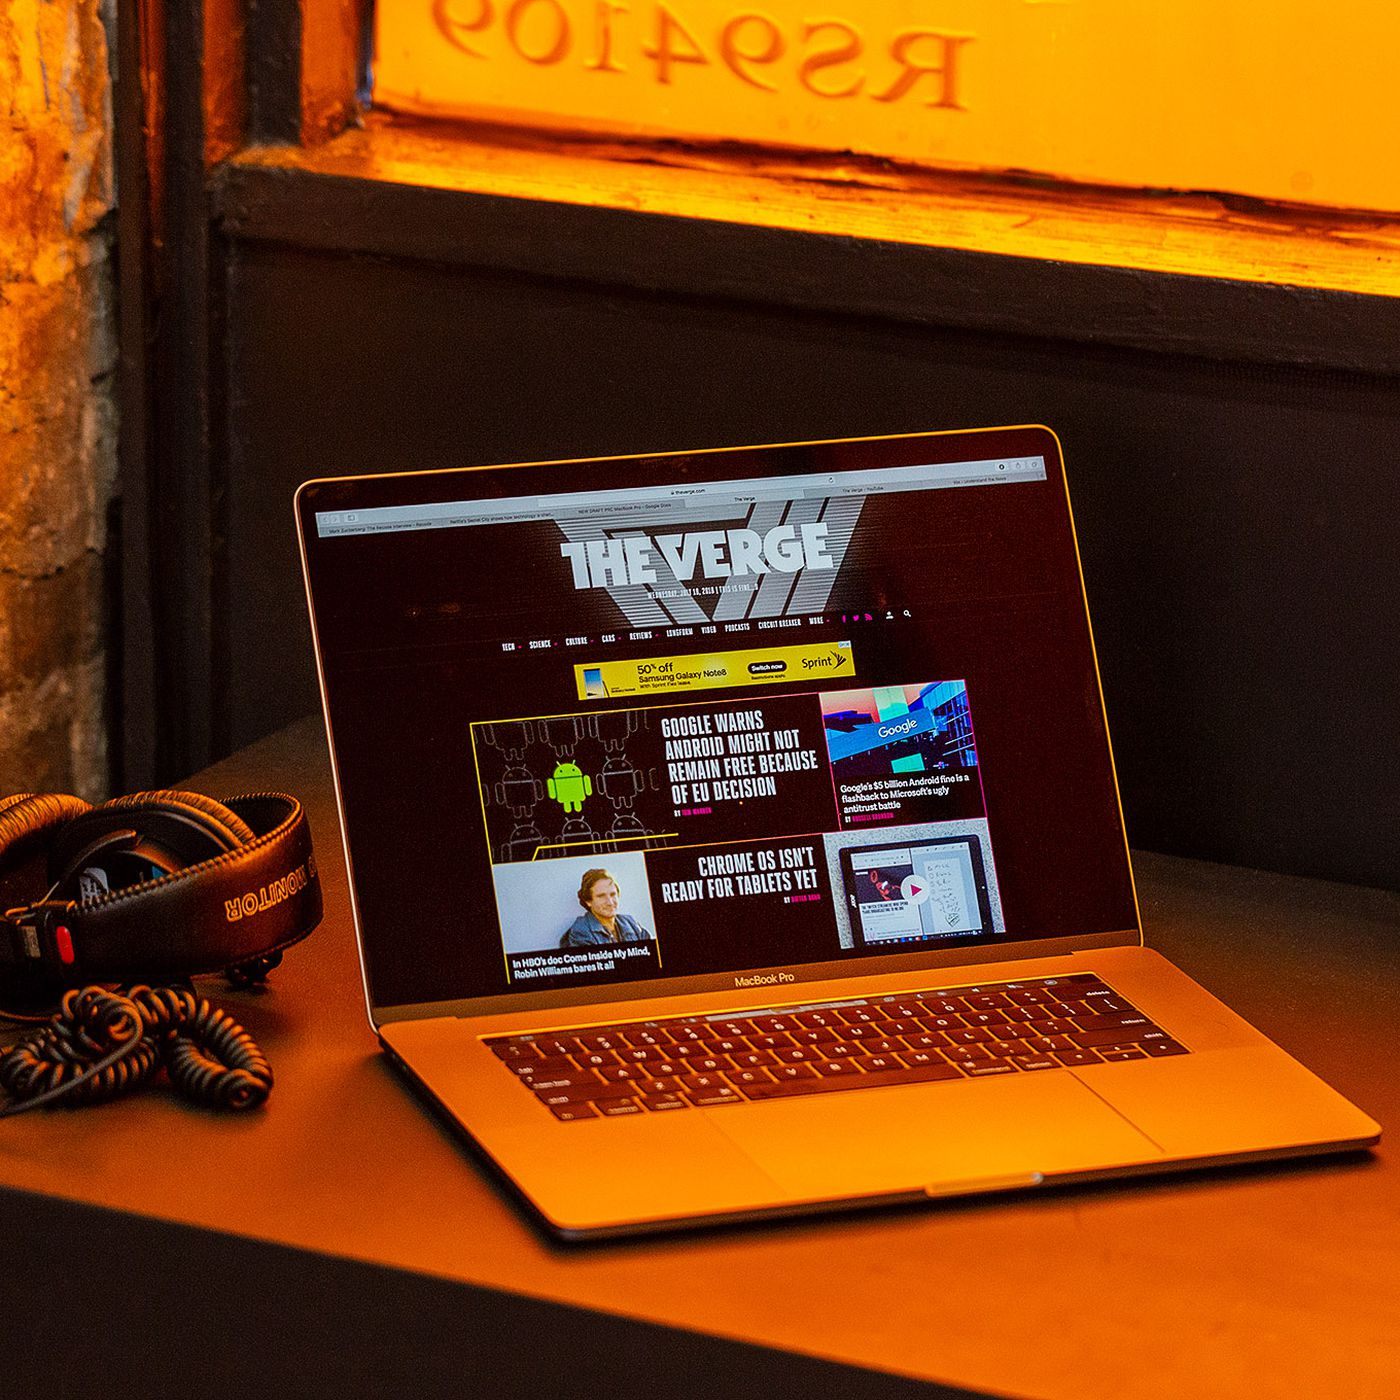 Apple confirms MacBook Pro thermal throttling, software fix